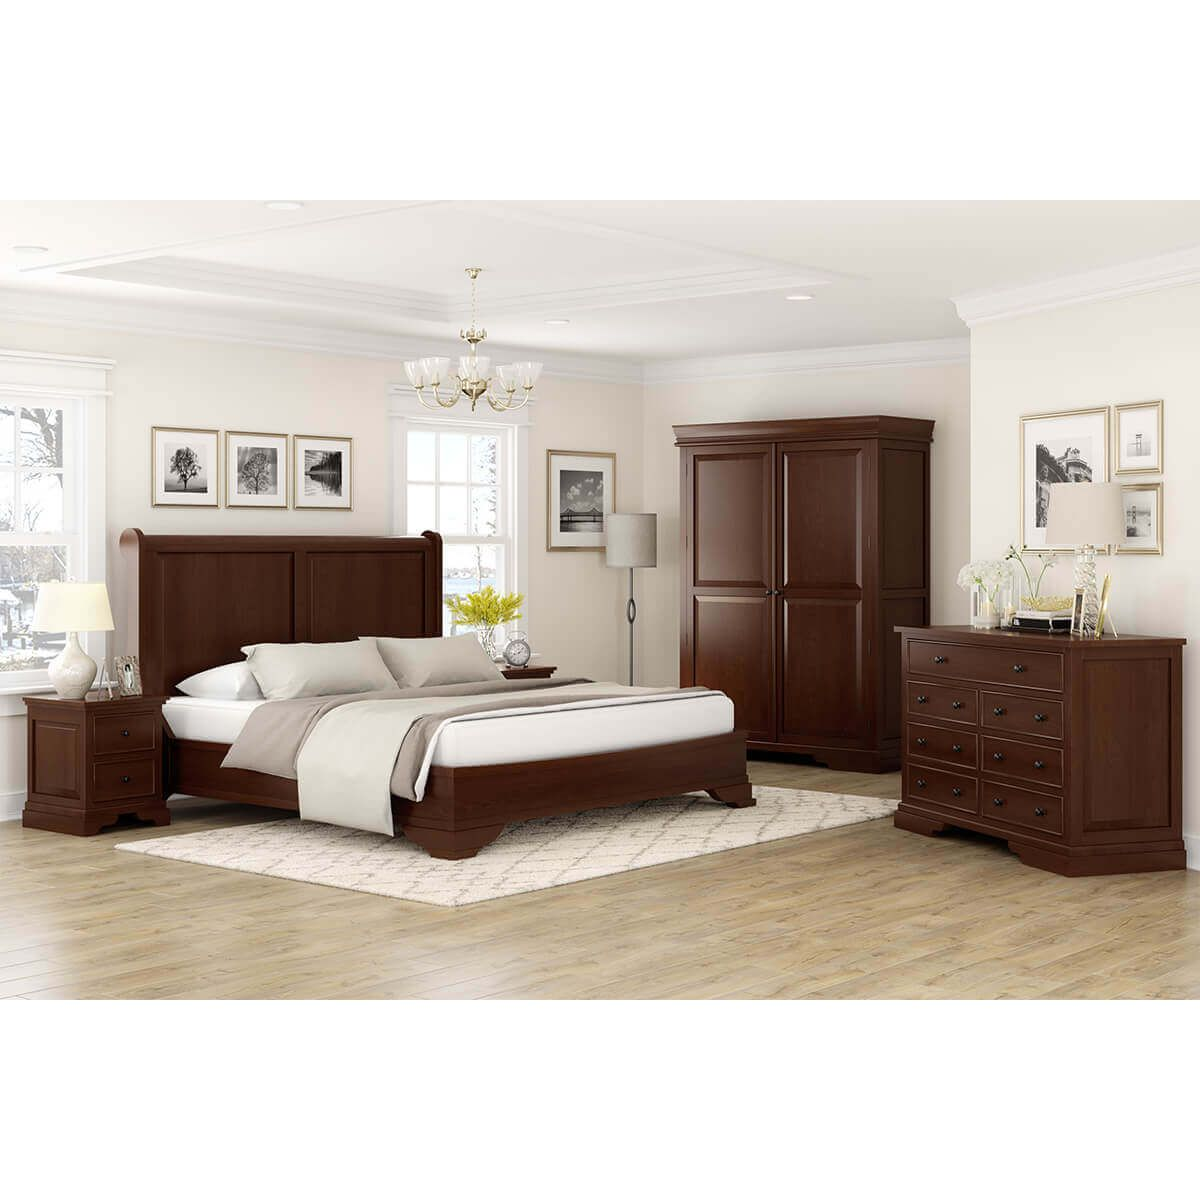 Accoville Mahogany Traditional 5 Piece Bedroom Set Full Size Bedroom Sets 5 Piece Bedroom Set Bedroom Set